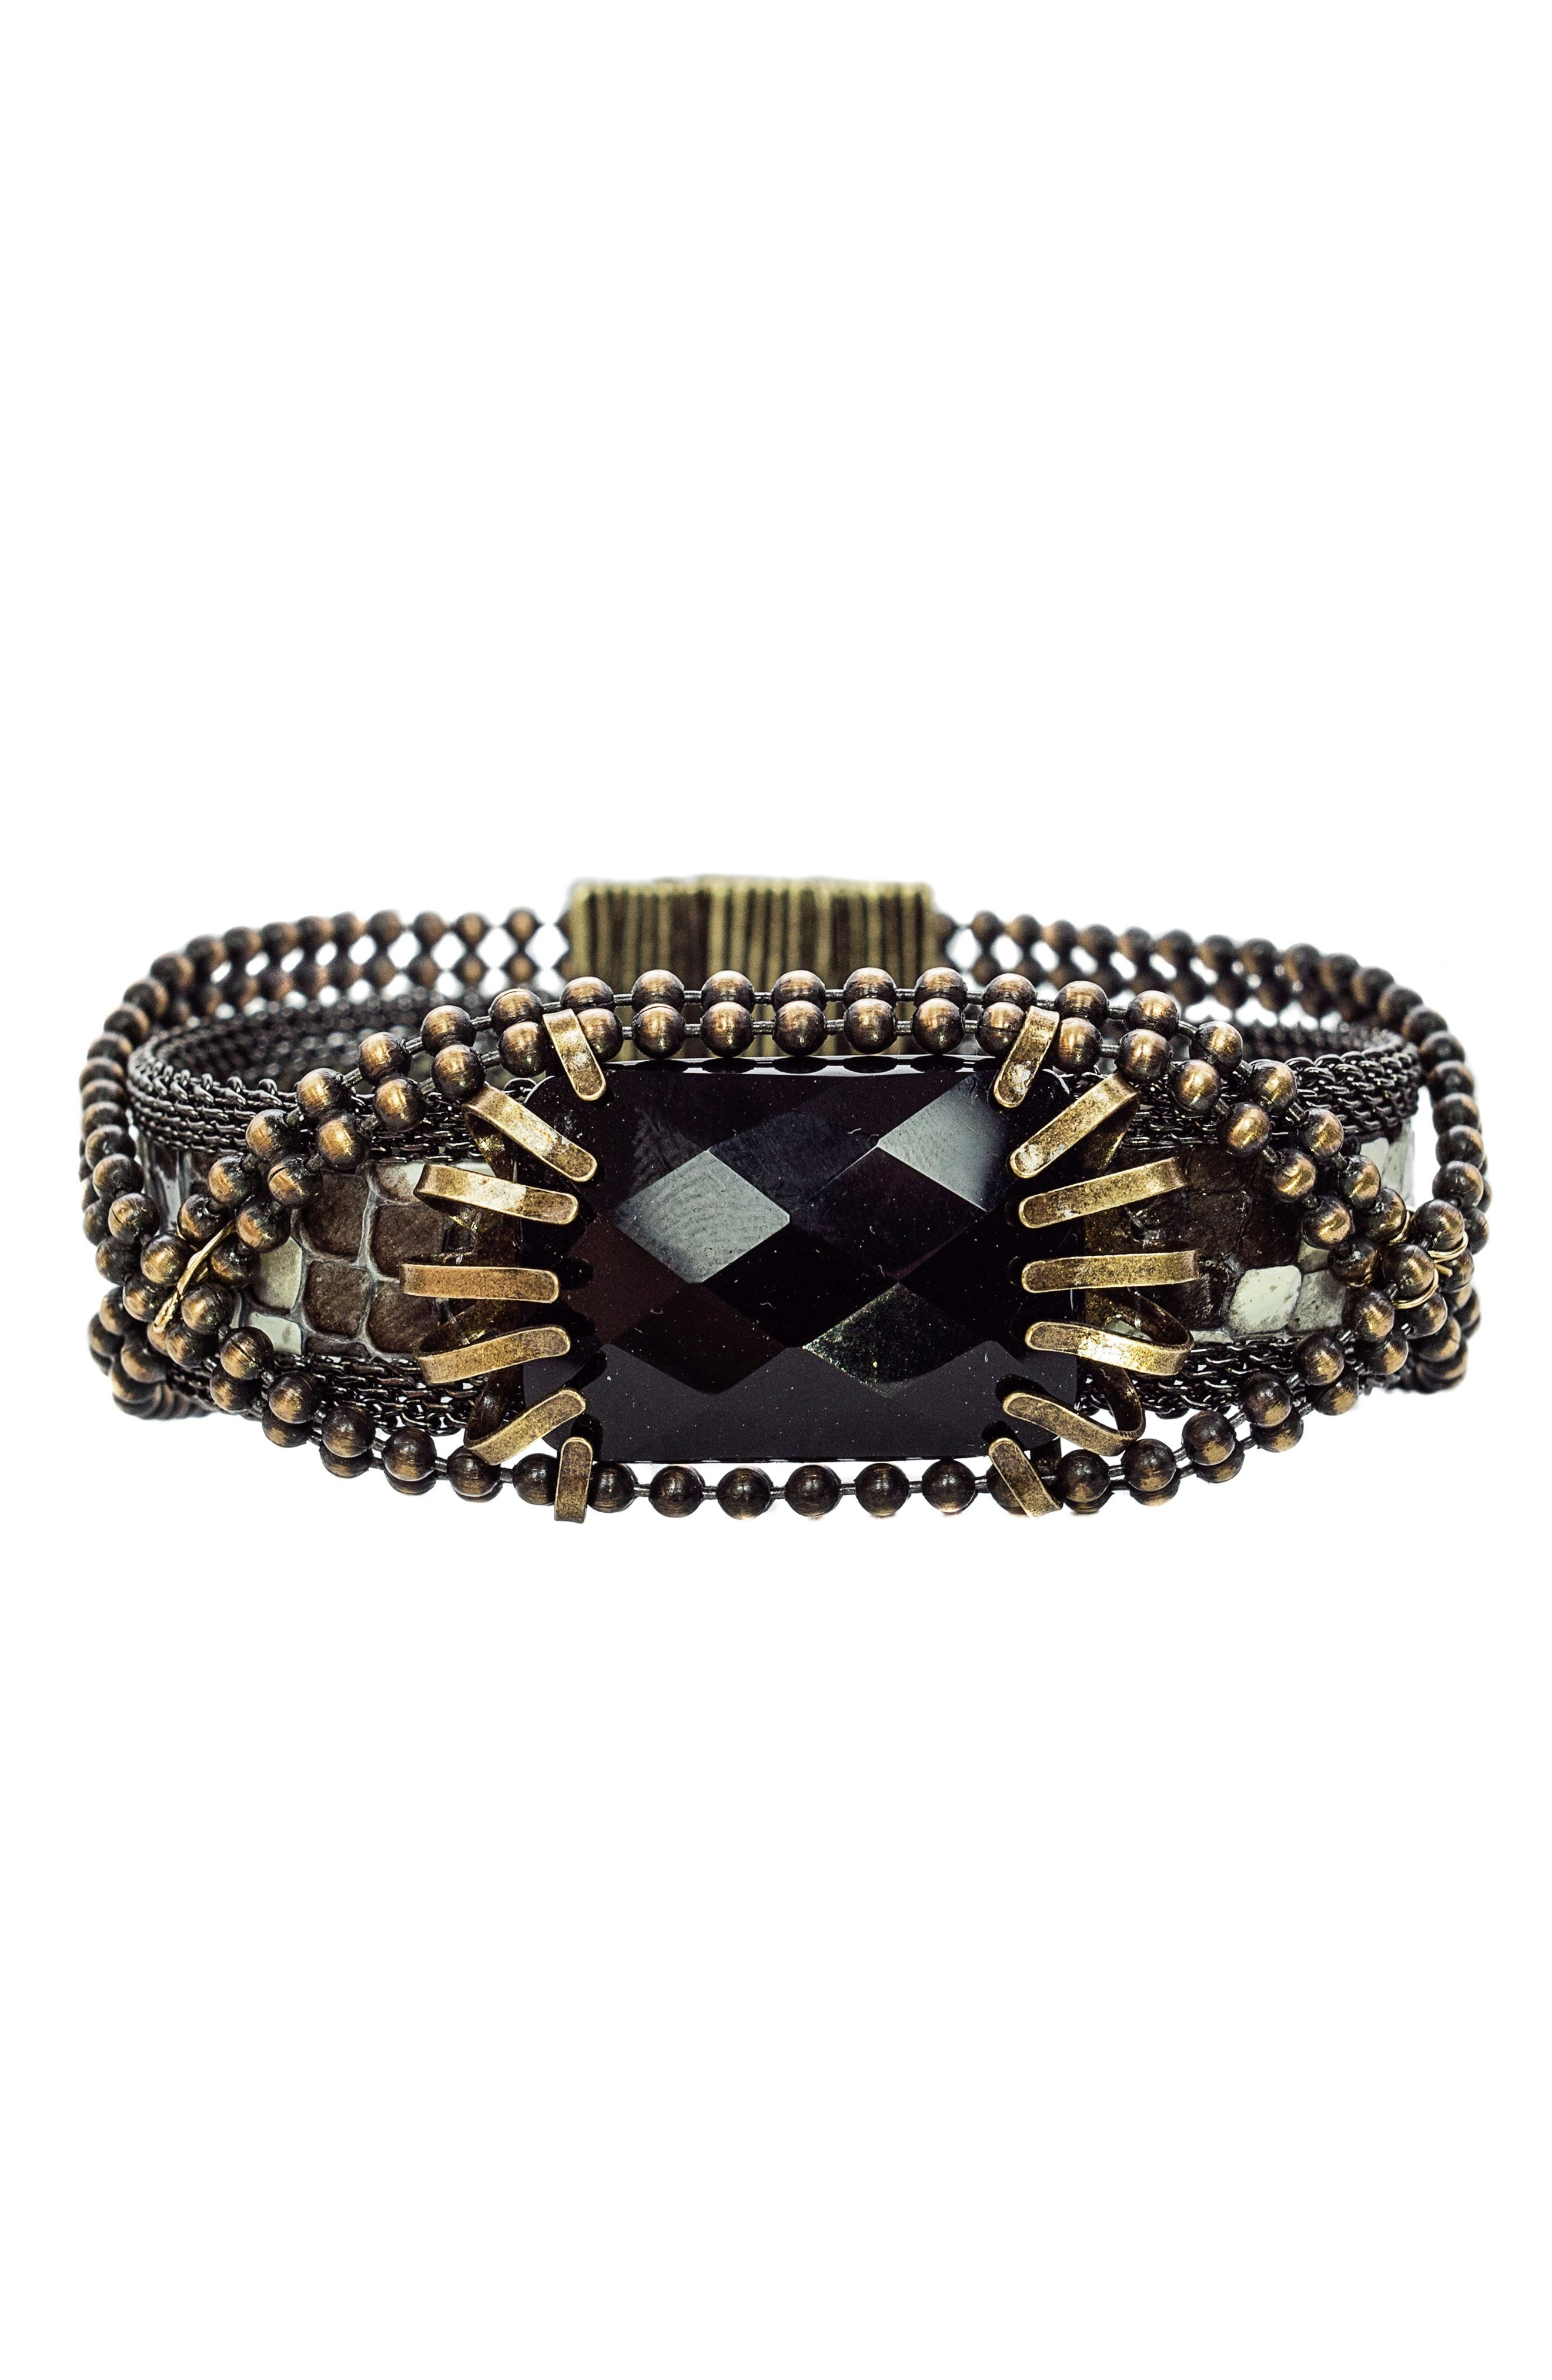 Stone & Snakeskin Bracelet,                             Main thumbnail 1, color,                             Black/ Bronze